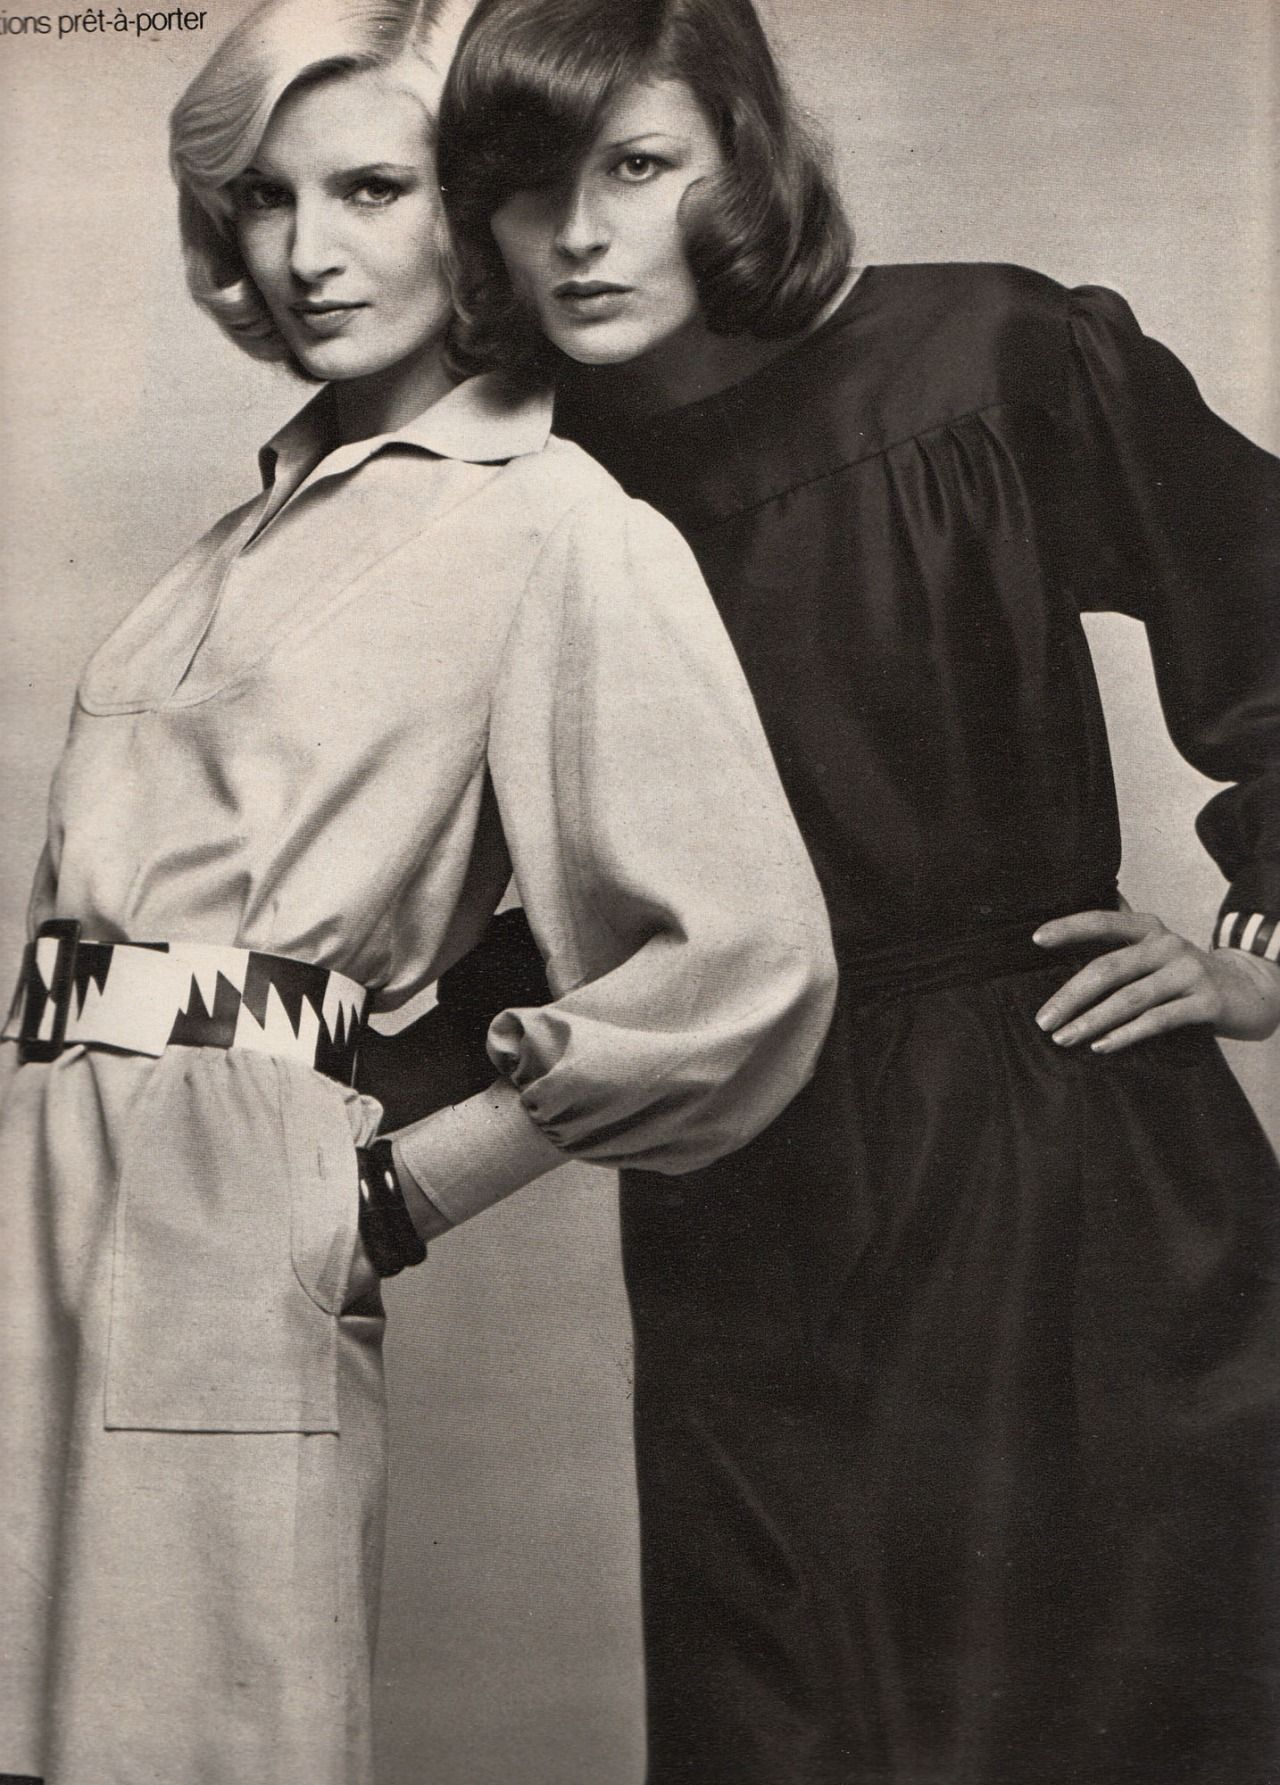 Left: Karl Lagerfeld for Chloe, Right: Nina Ricci, Marie Claire - March 1972, Photographed by Marc Hispard